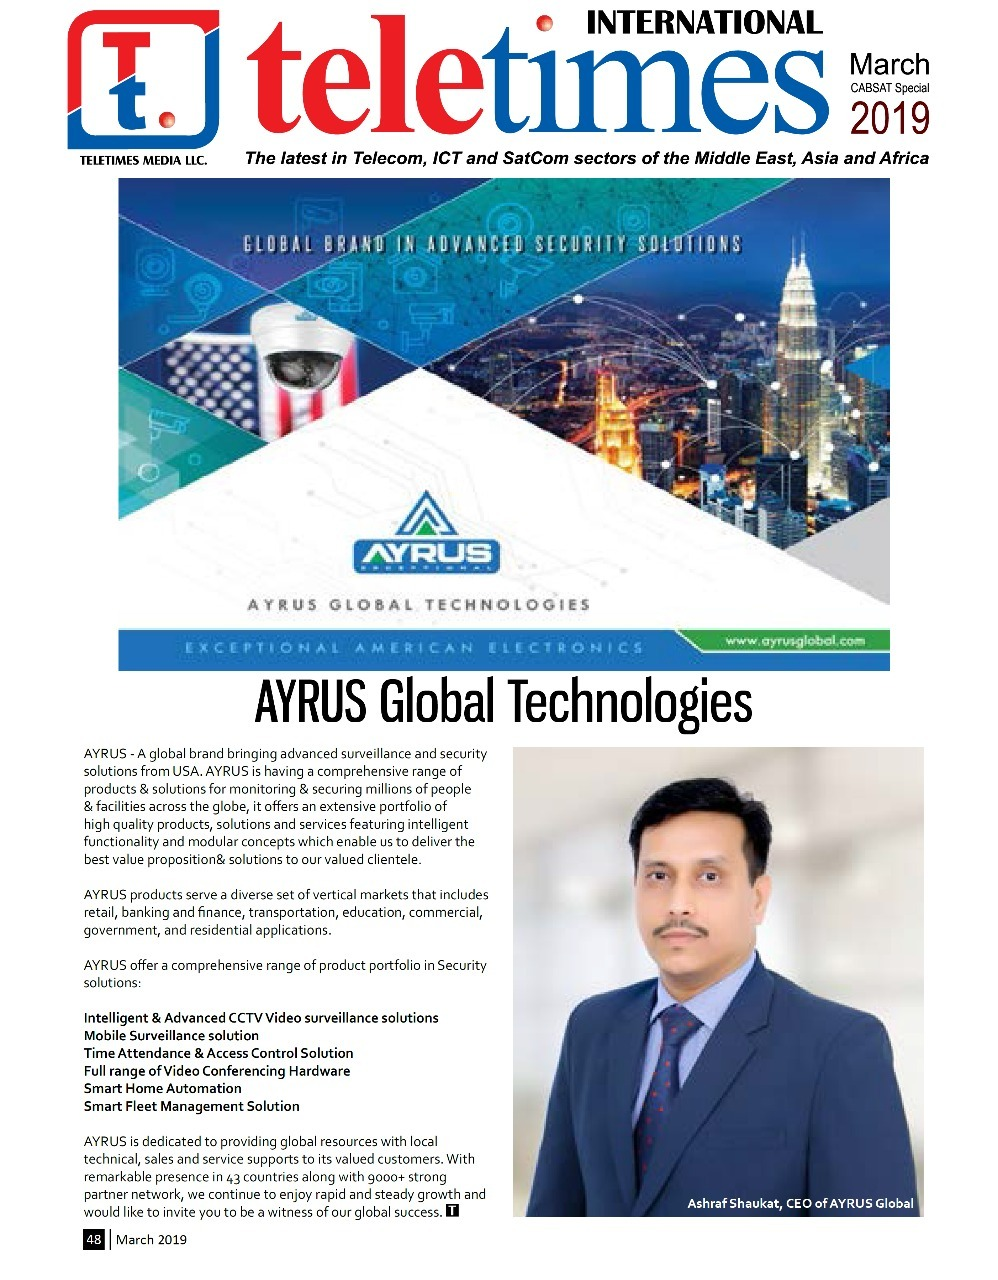 MAR 2019 MIDDLE EAST LARGEST SELLING PUBLICATION SHOWCASE AYRUS GLOBAL IN THEIR MARCH EDITION